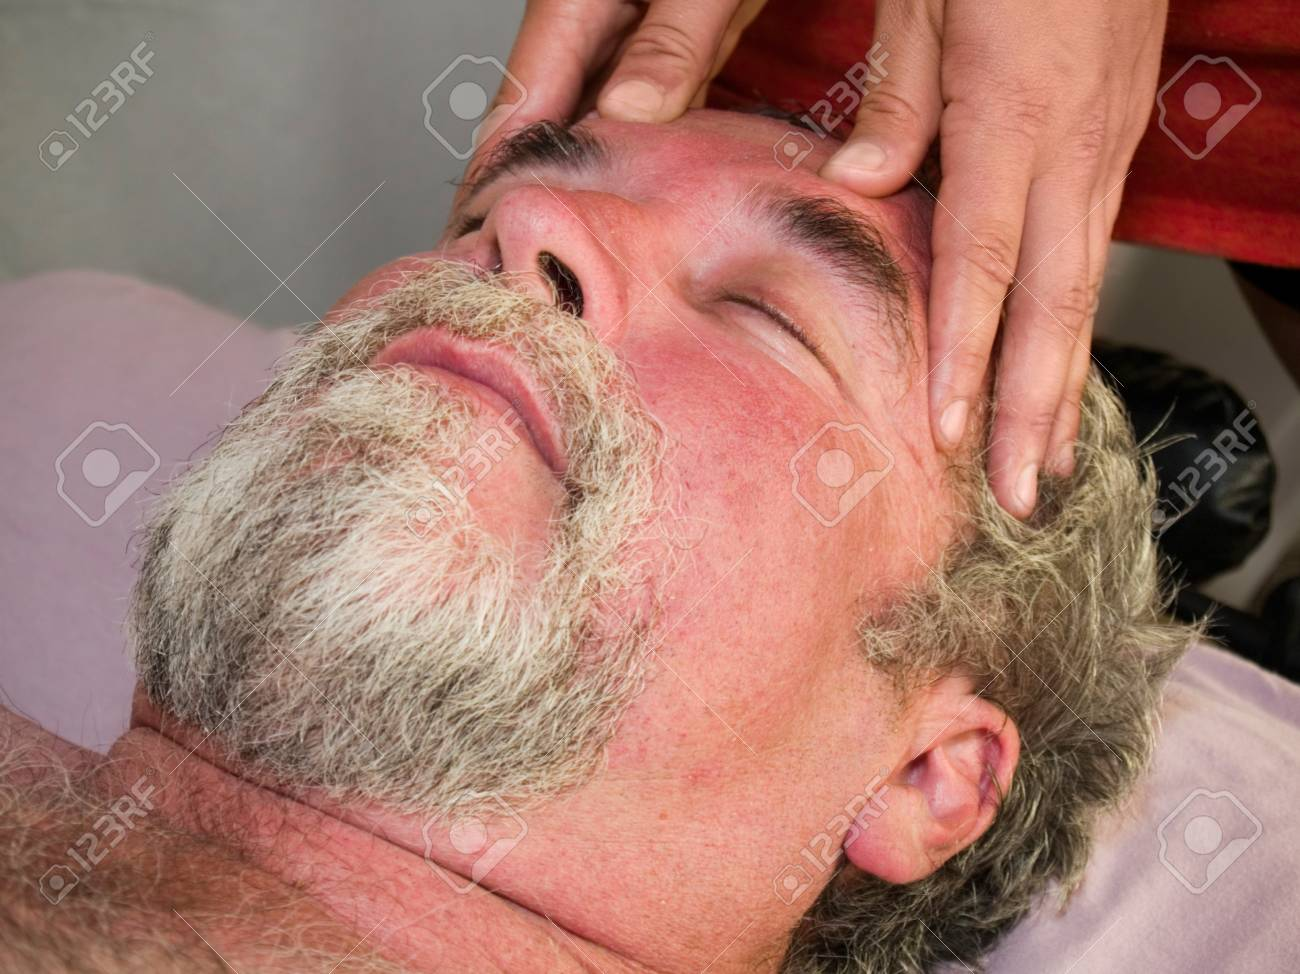 Man in his 50's getting a head massage Stock Photo - 11375377